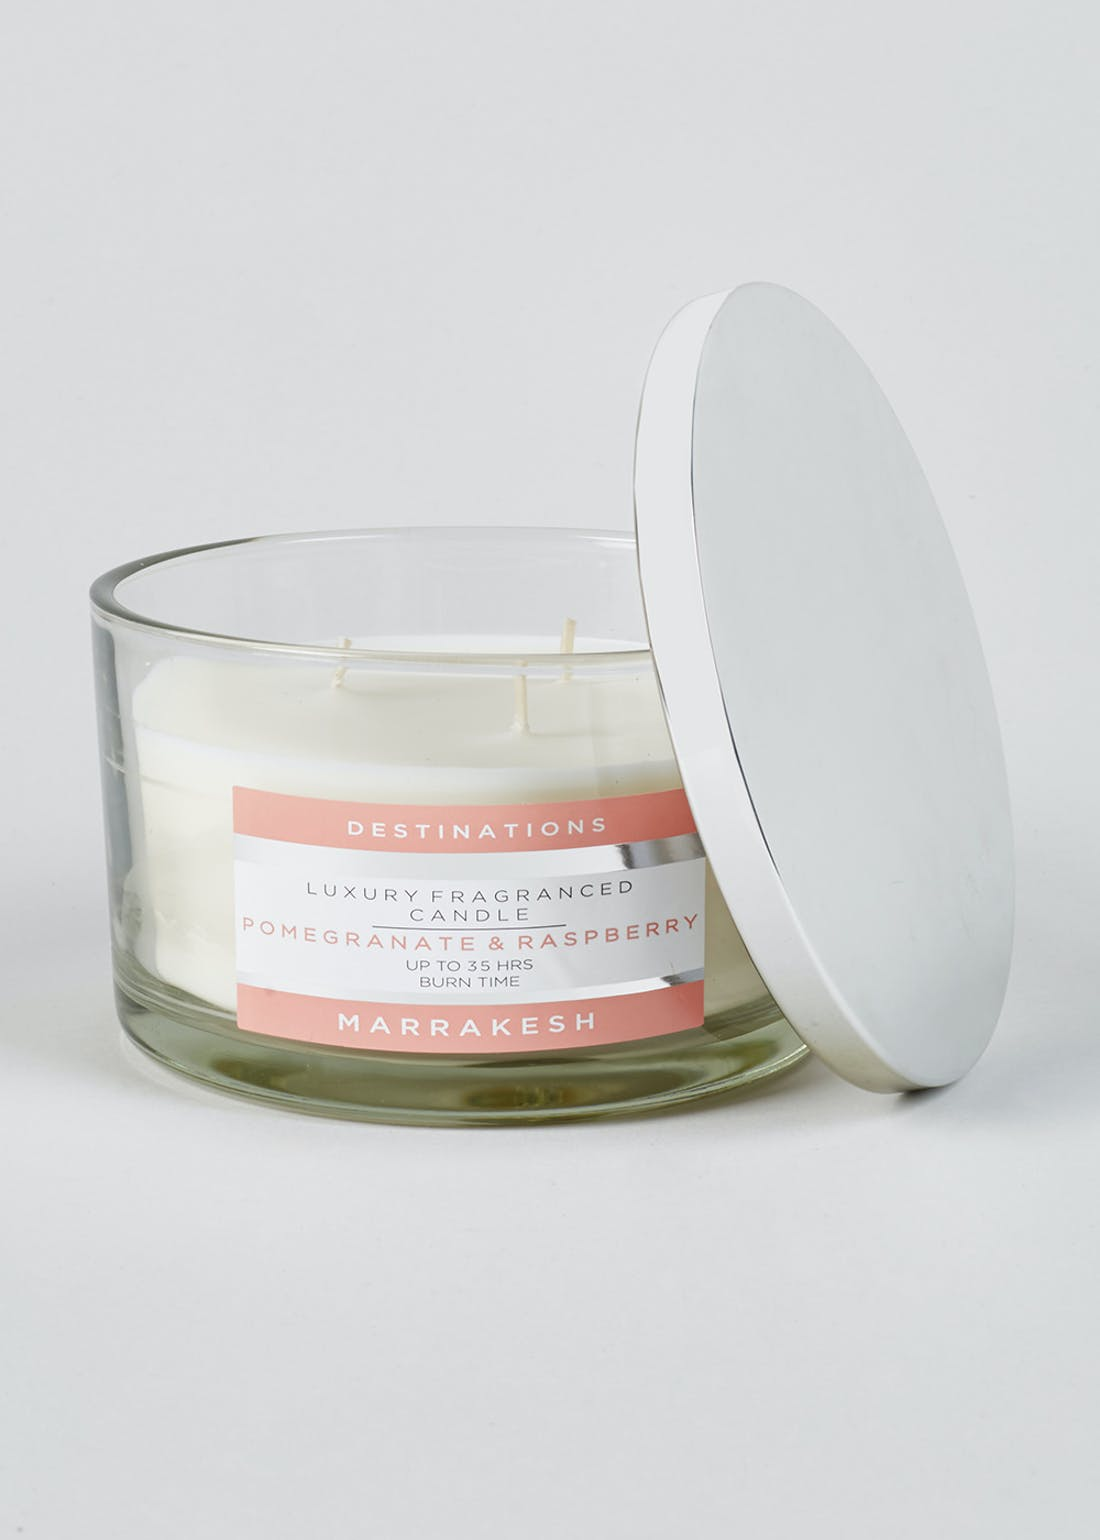 Pomegranate & Raspberry Marrakesh Destinations 3 Wick Candle (13cm x 8cm)